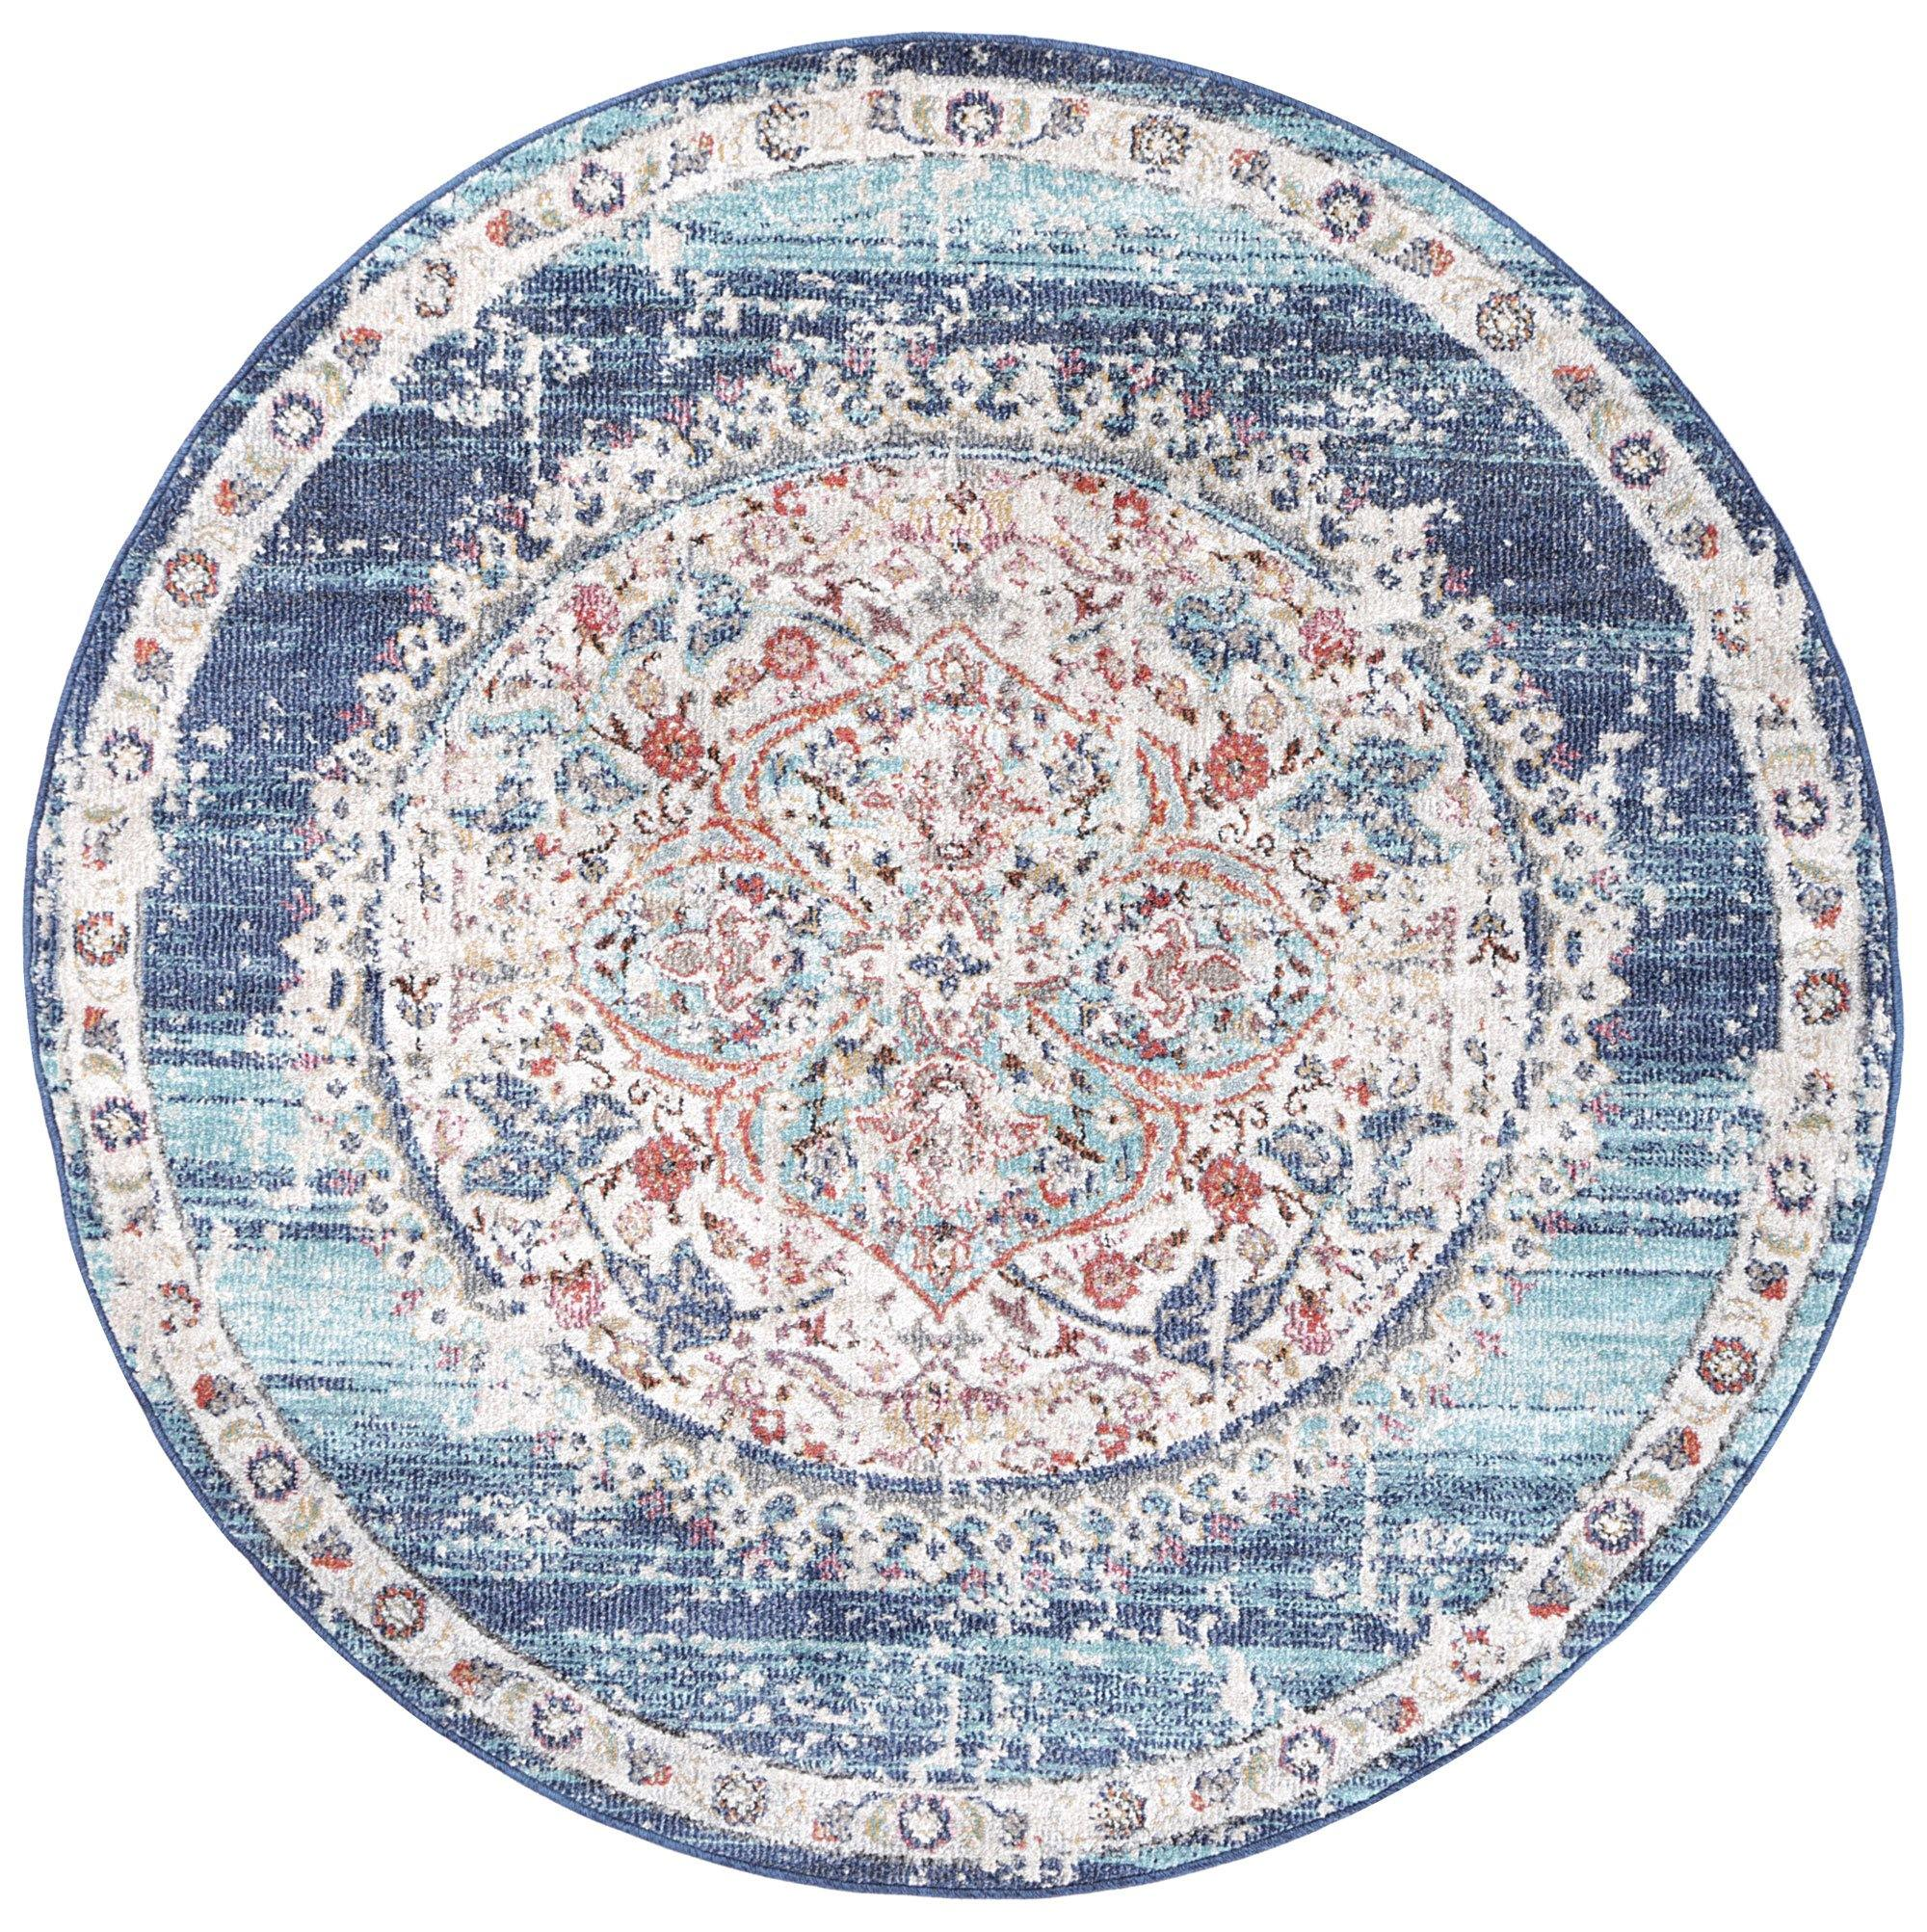 Clara Hollow Medalion Transitional Navy Multi Round Rug - The Rugs